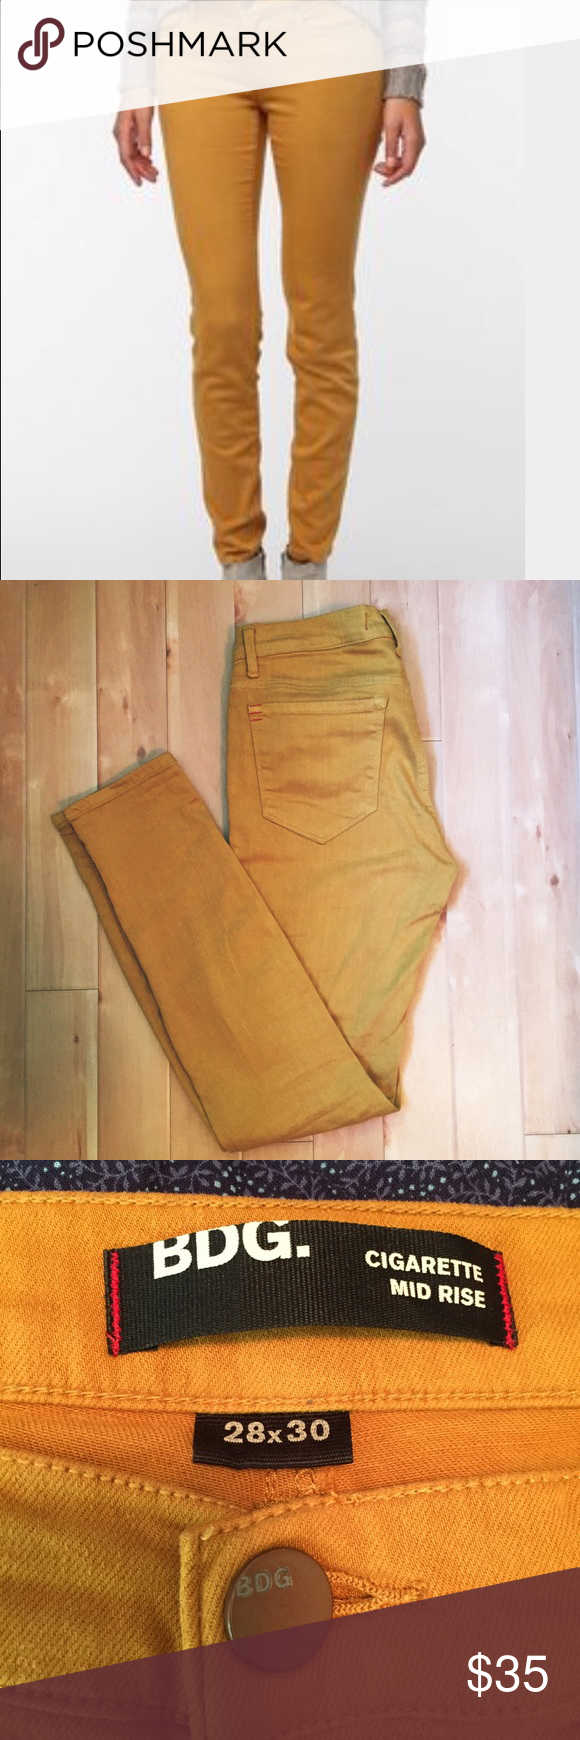 BDG Cigarette Mid Rise Skinny Jeans A gorgeous, warm, golden mustard colored pair of pants. Wonderfully soft and stretchy. Urban Outfitters Pants Skinny